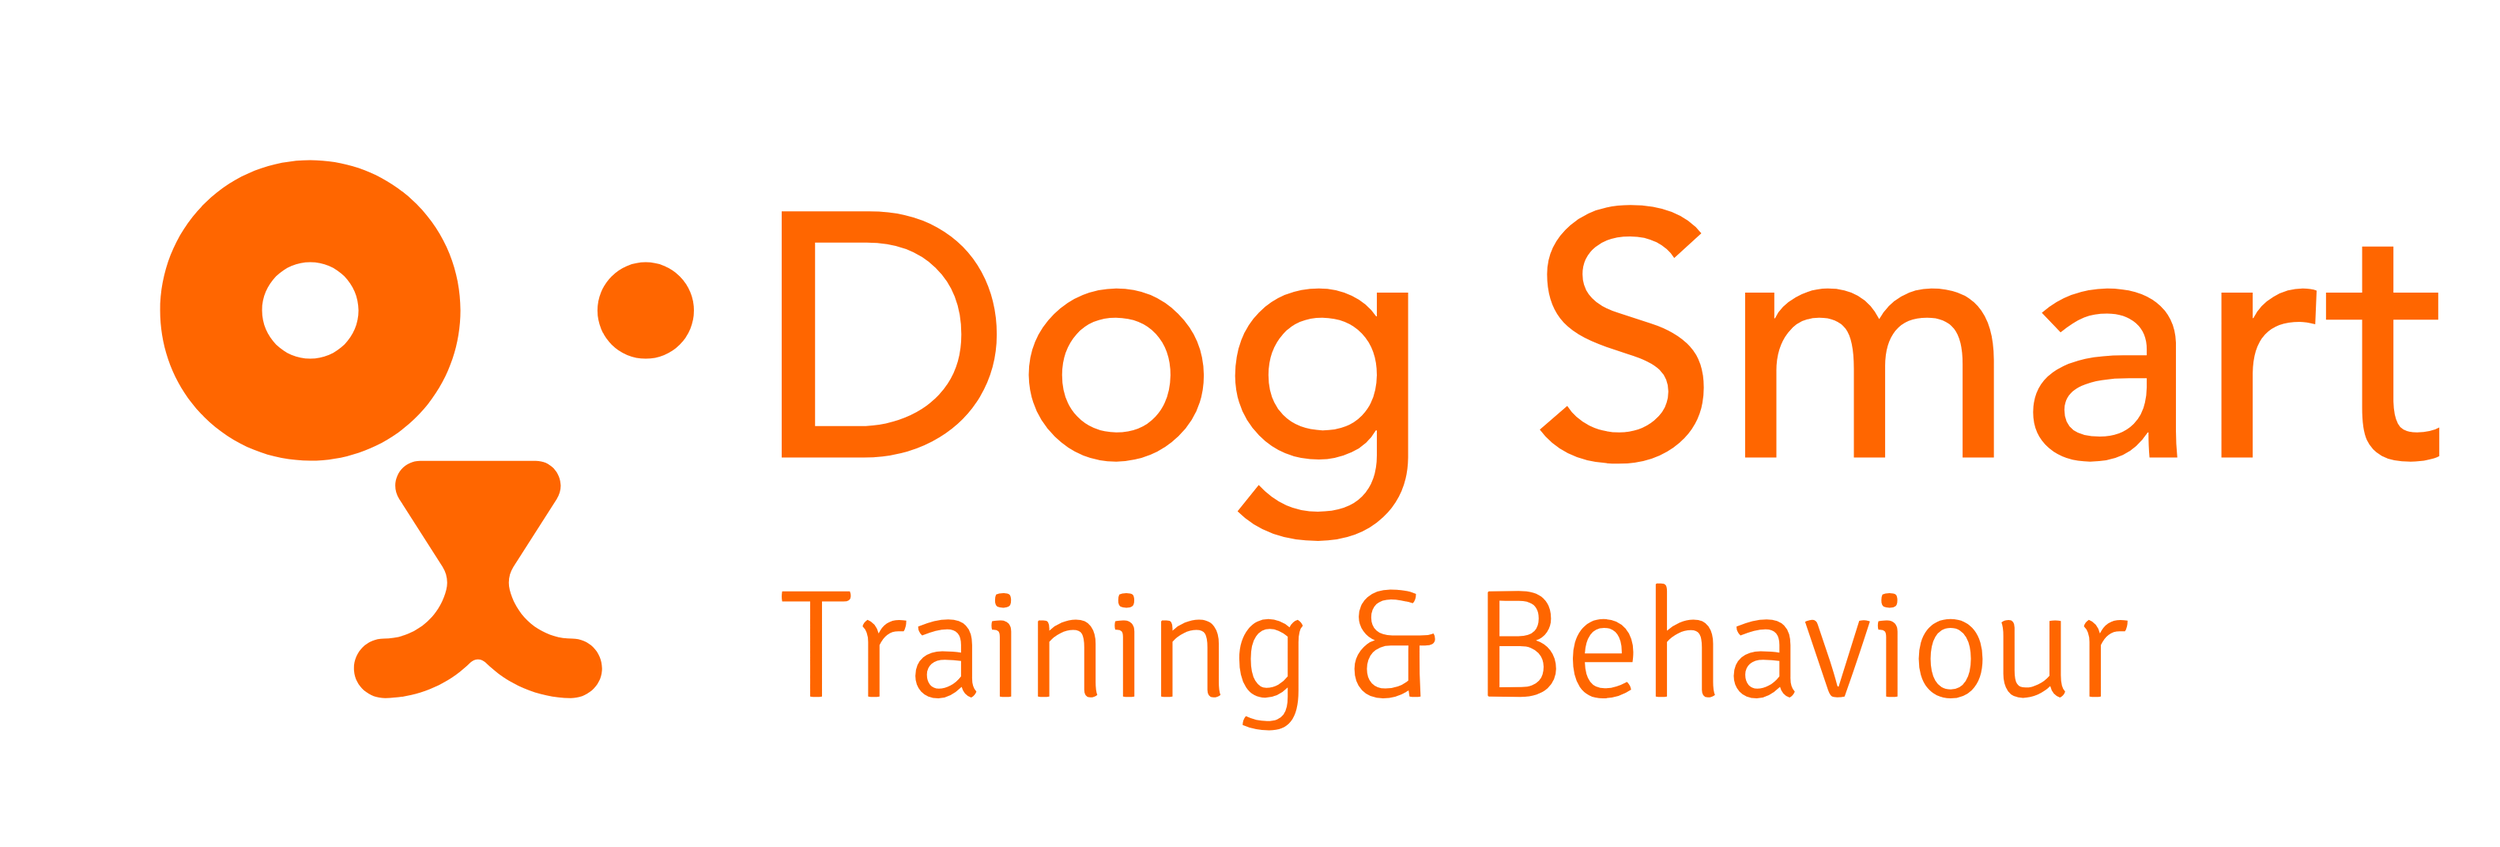 Dog Smart Training & Behaviour Ltd